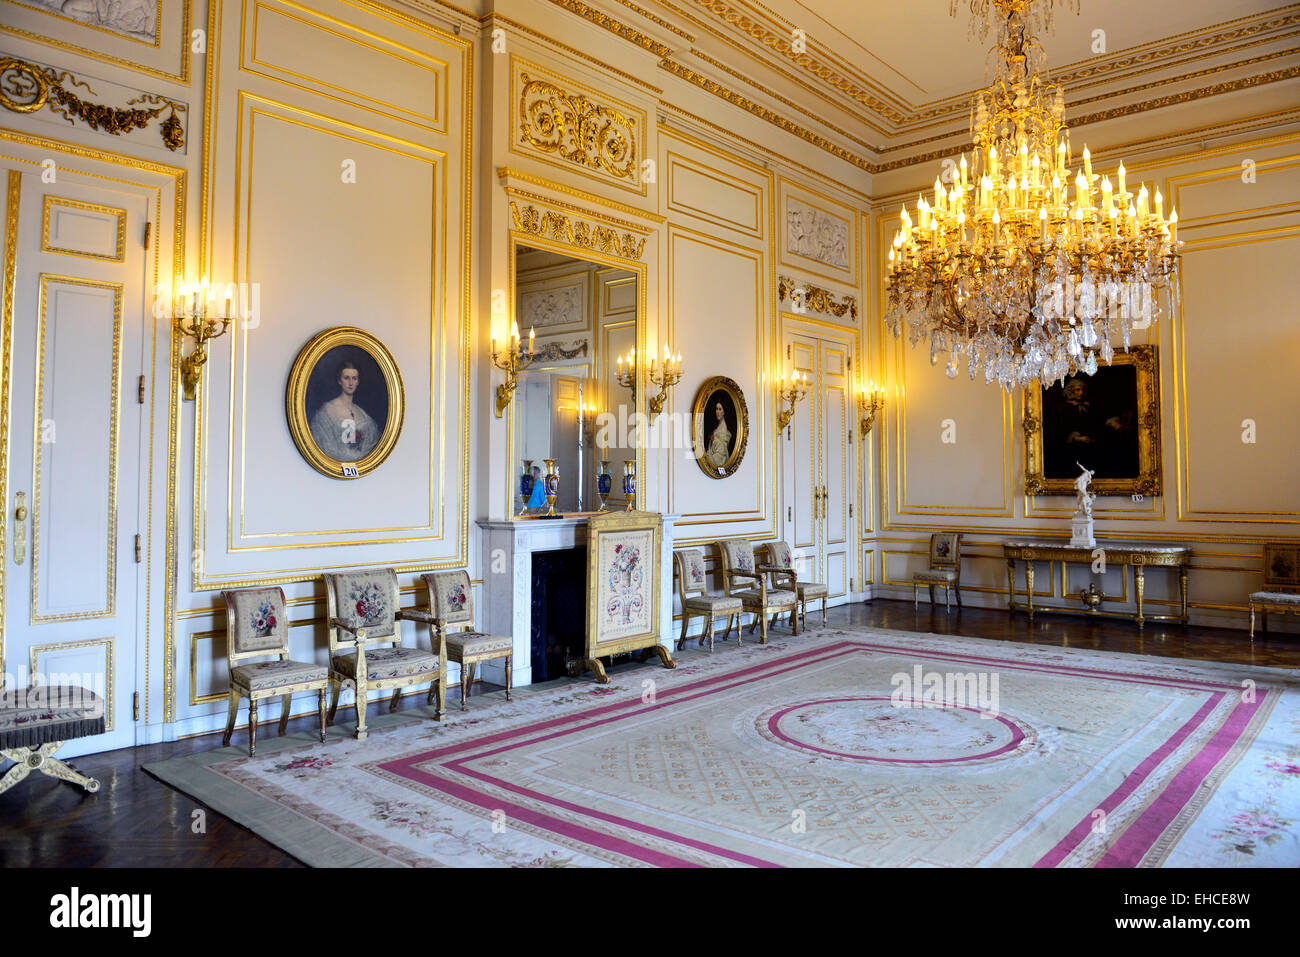 The Beautiful Interior Halls And Rooms Of The Royal Palace In Brussels.